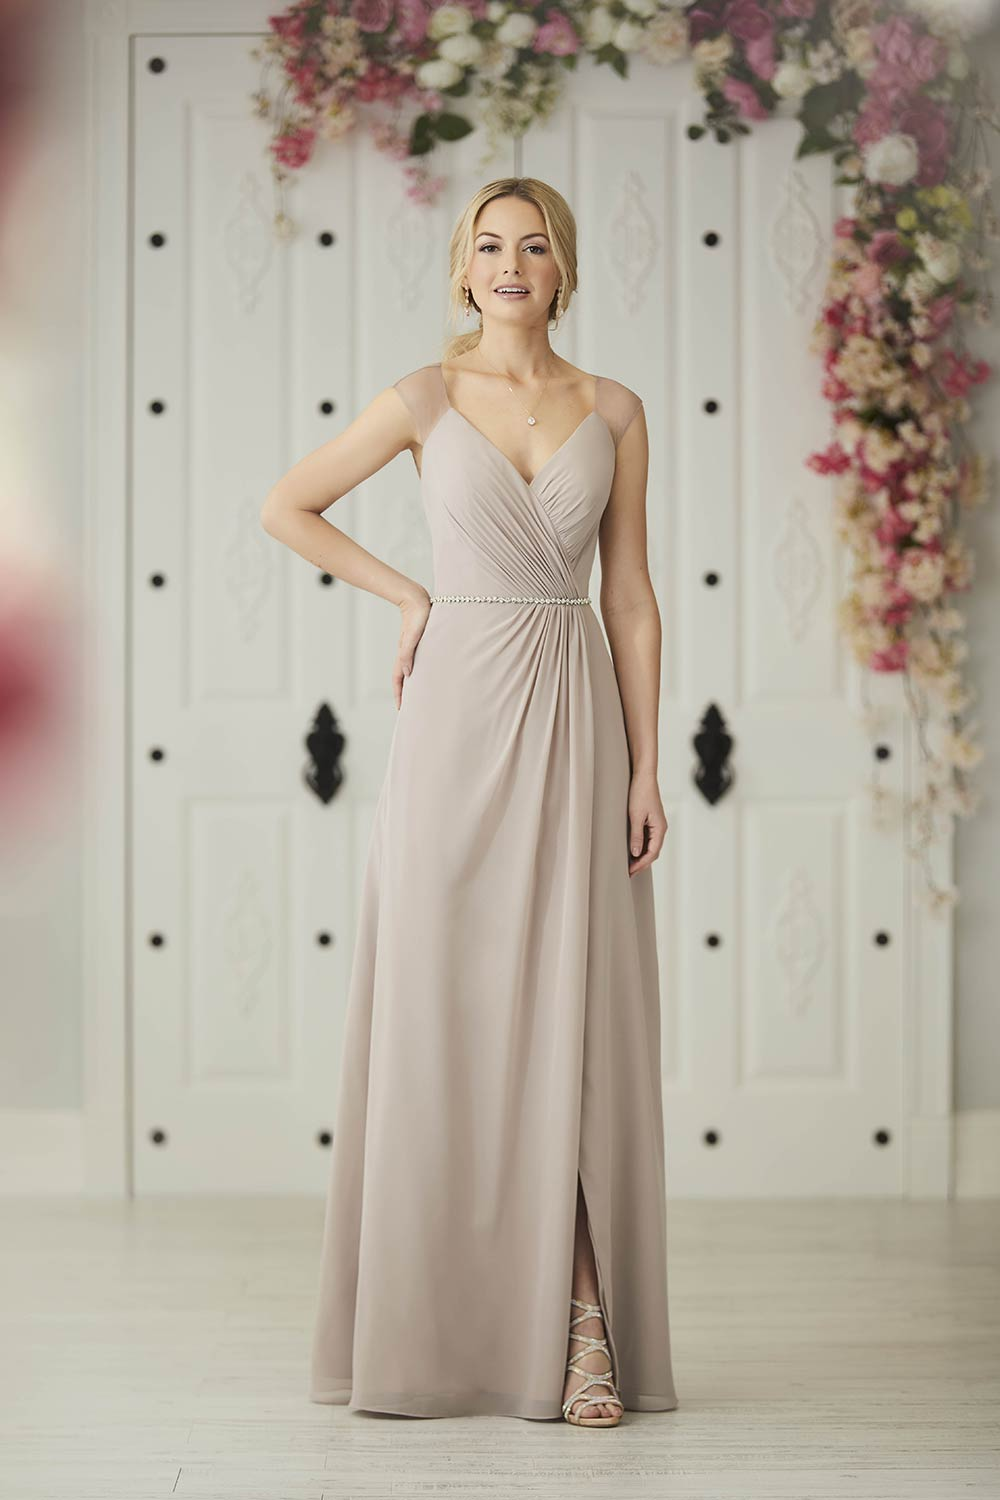 bridesmaid-dresses-jacquelin-bridals-canada-27292